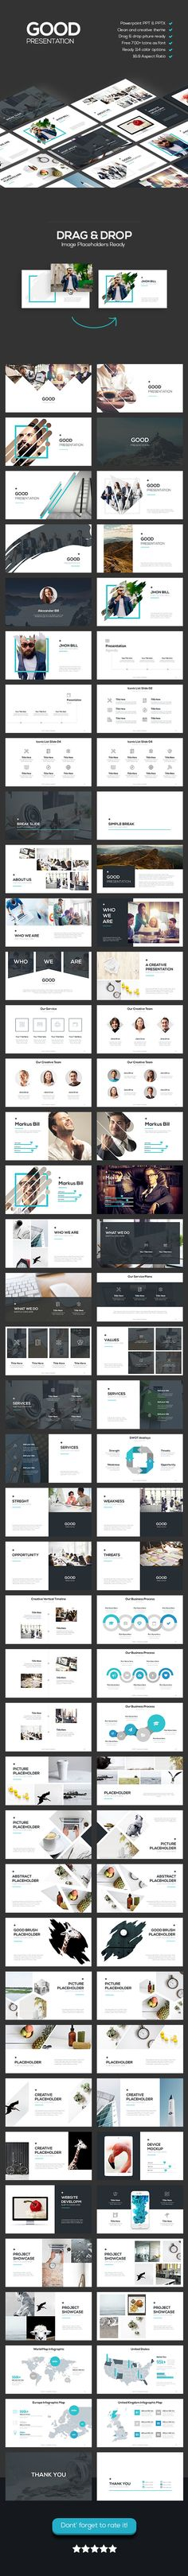 Good - Creative Theme (PowerPoint Templates) Template - sales presentation template